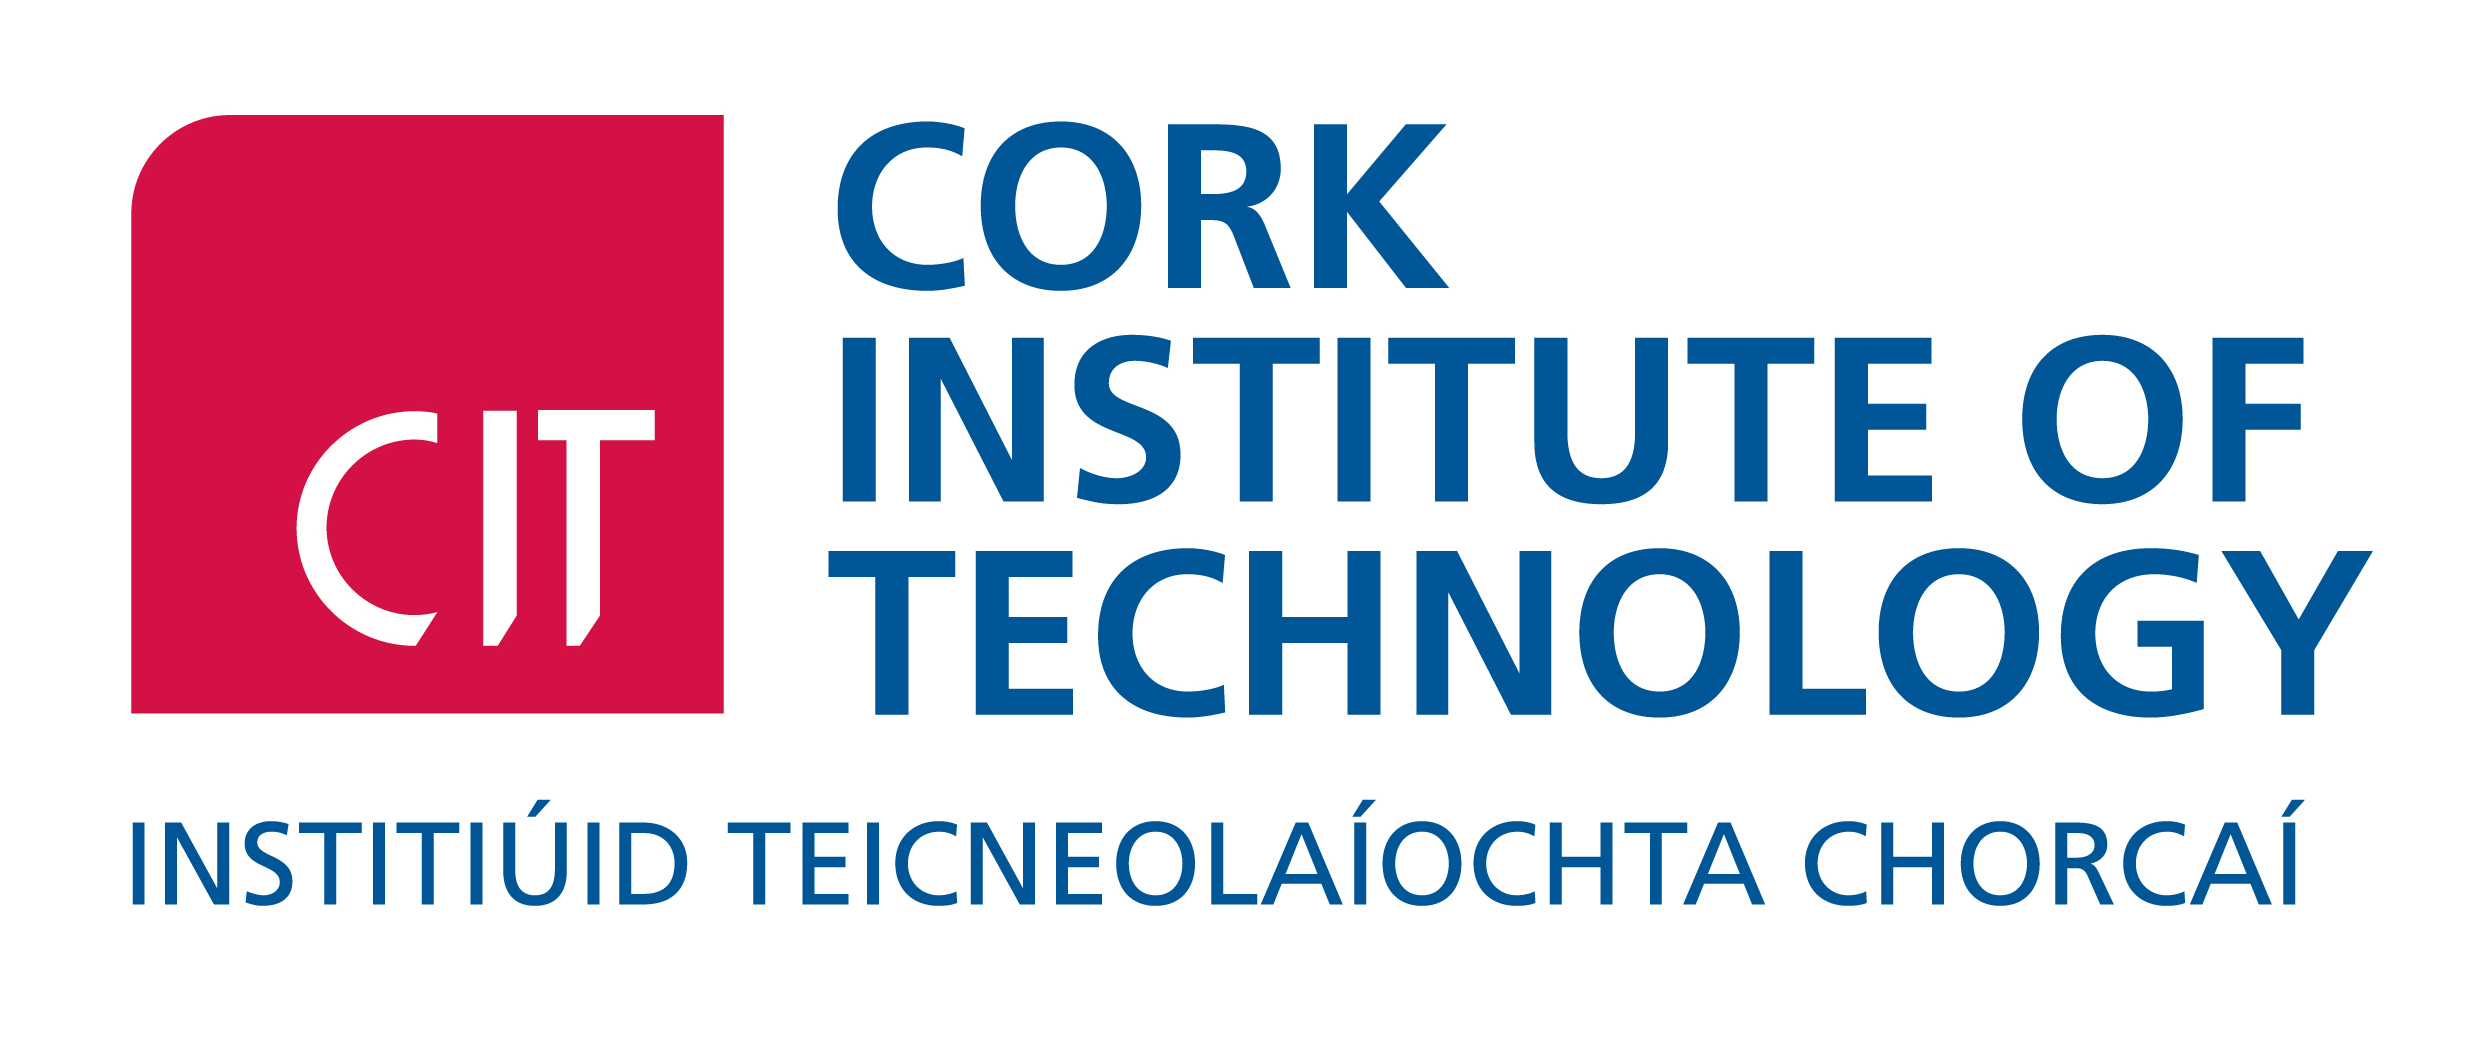 Cork Institute of Technology